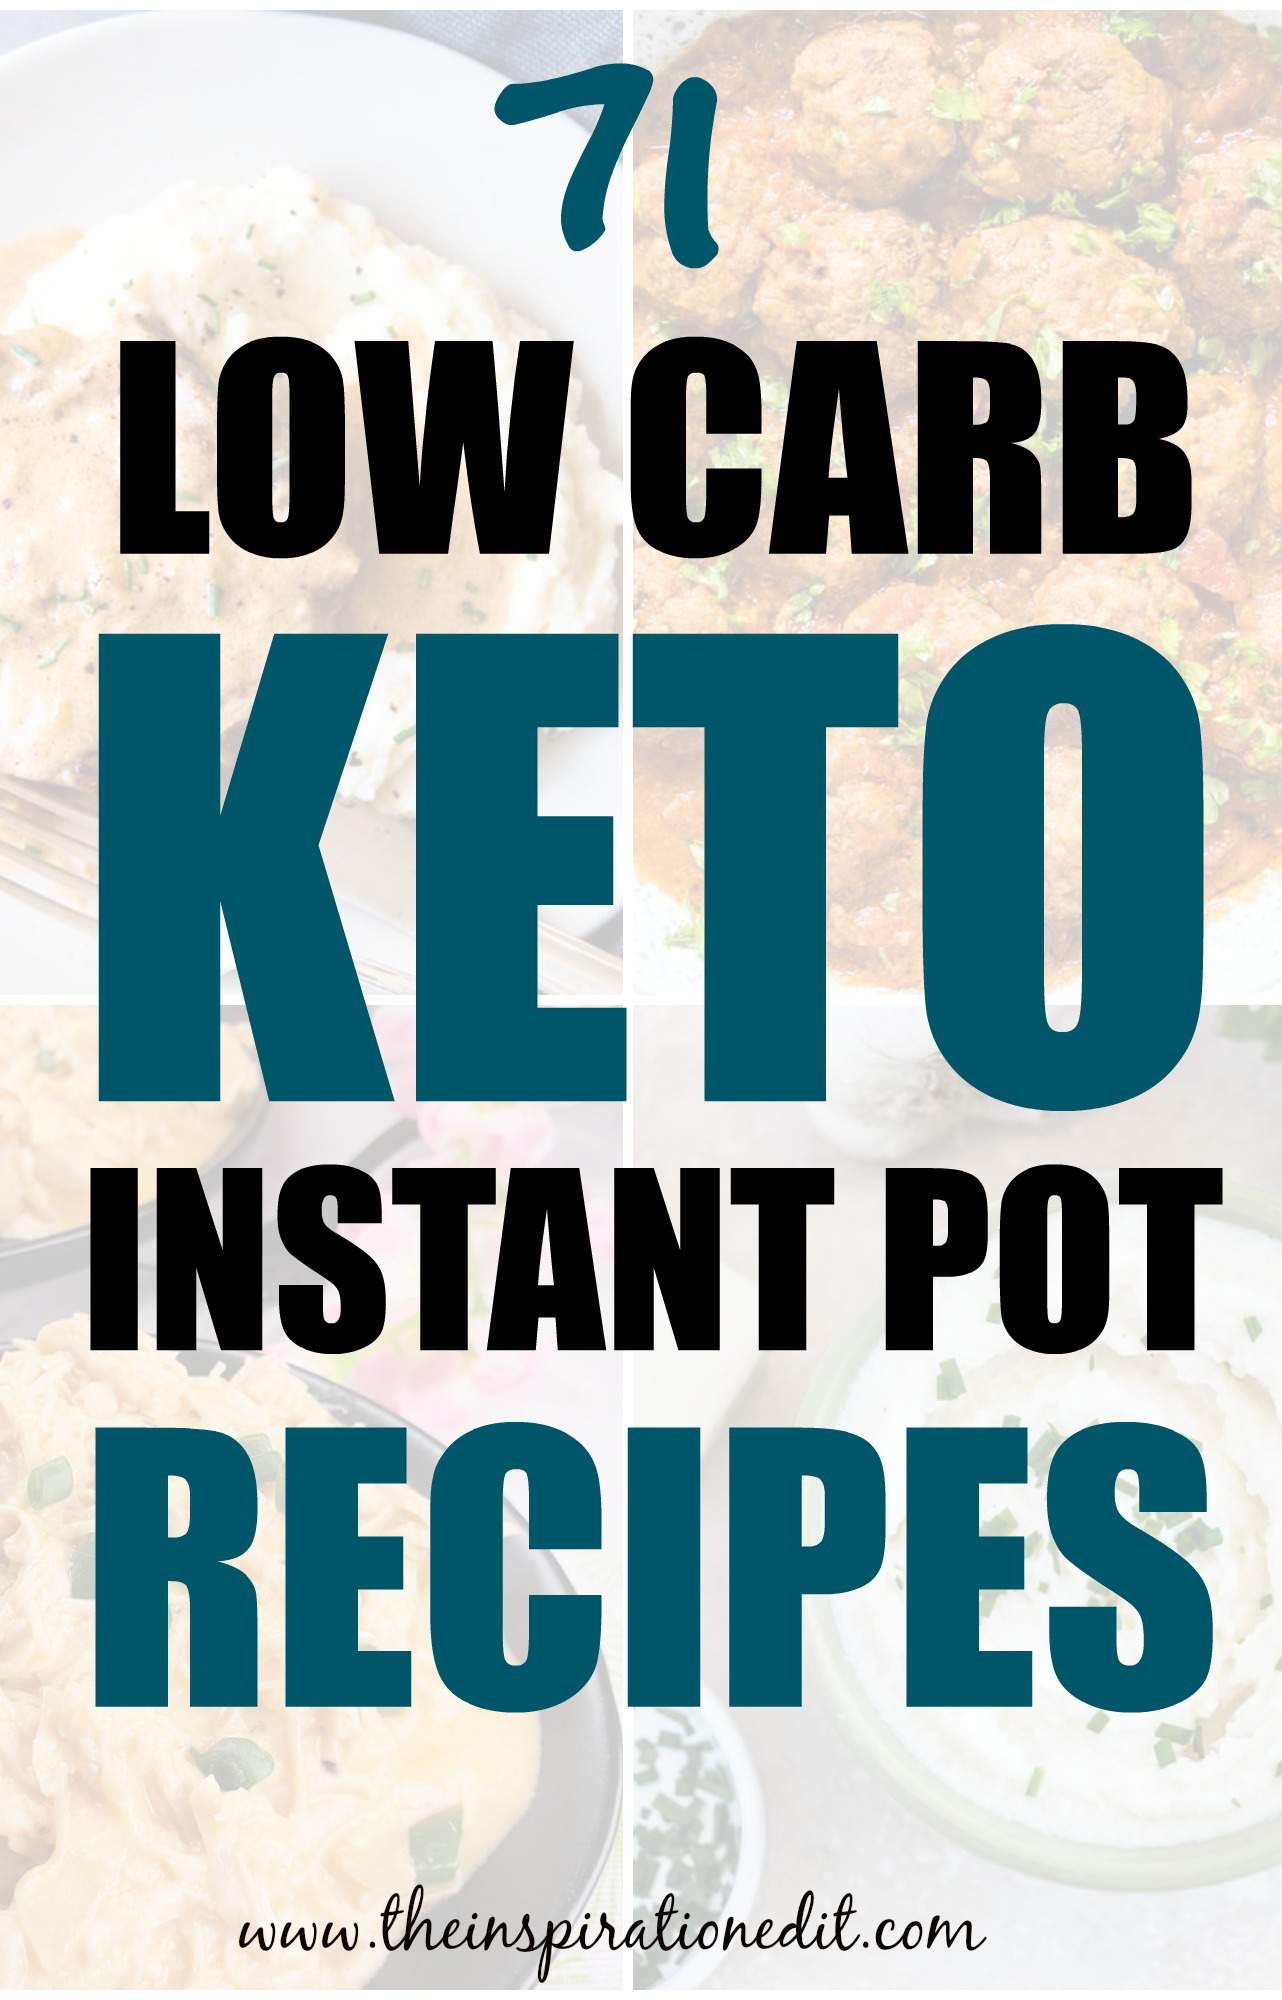 ow carb keto instant pot recipes